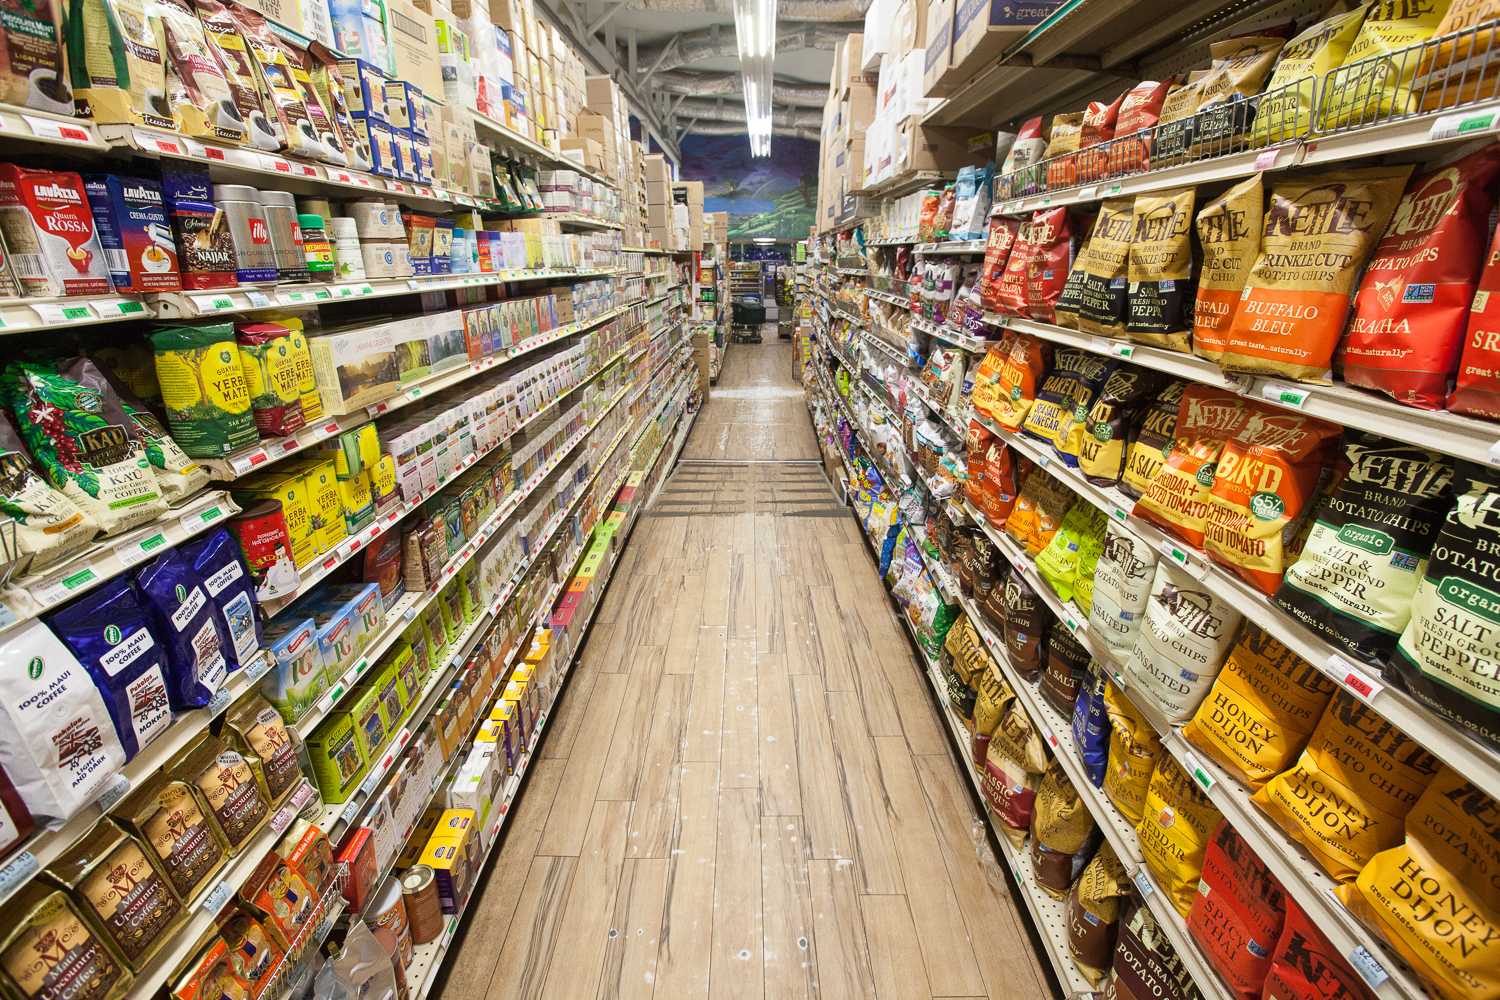 mana-foods-quality-grocery-store-aisle.jpg